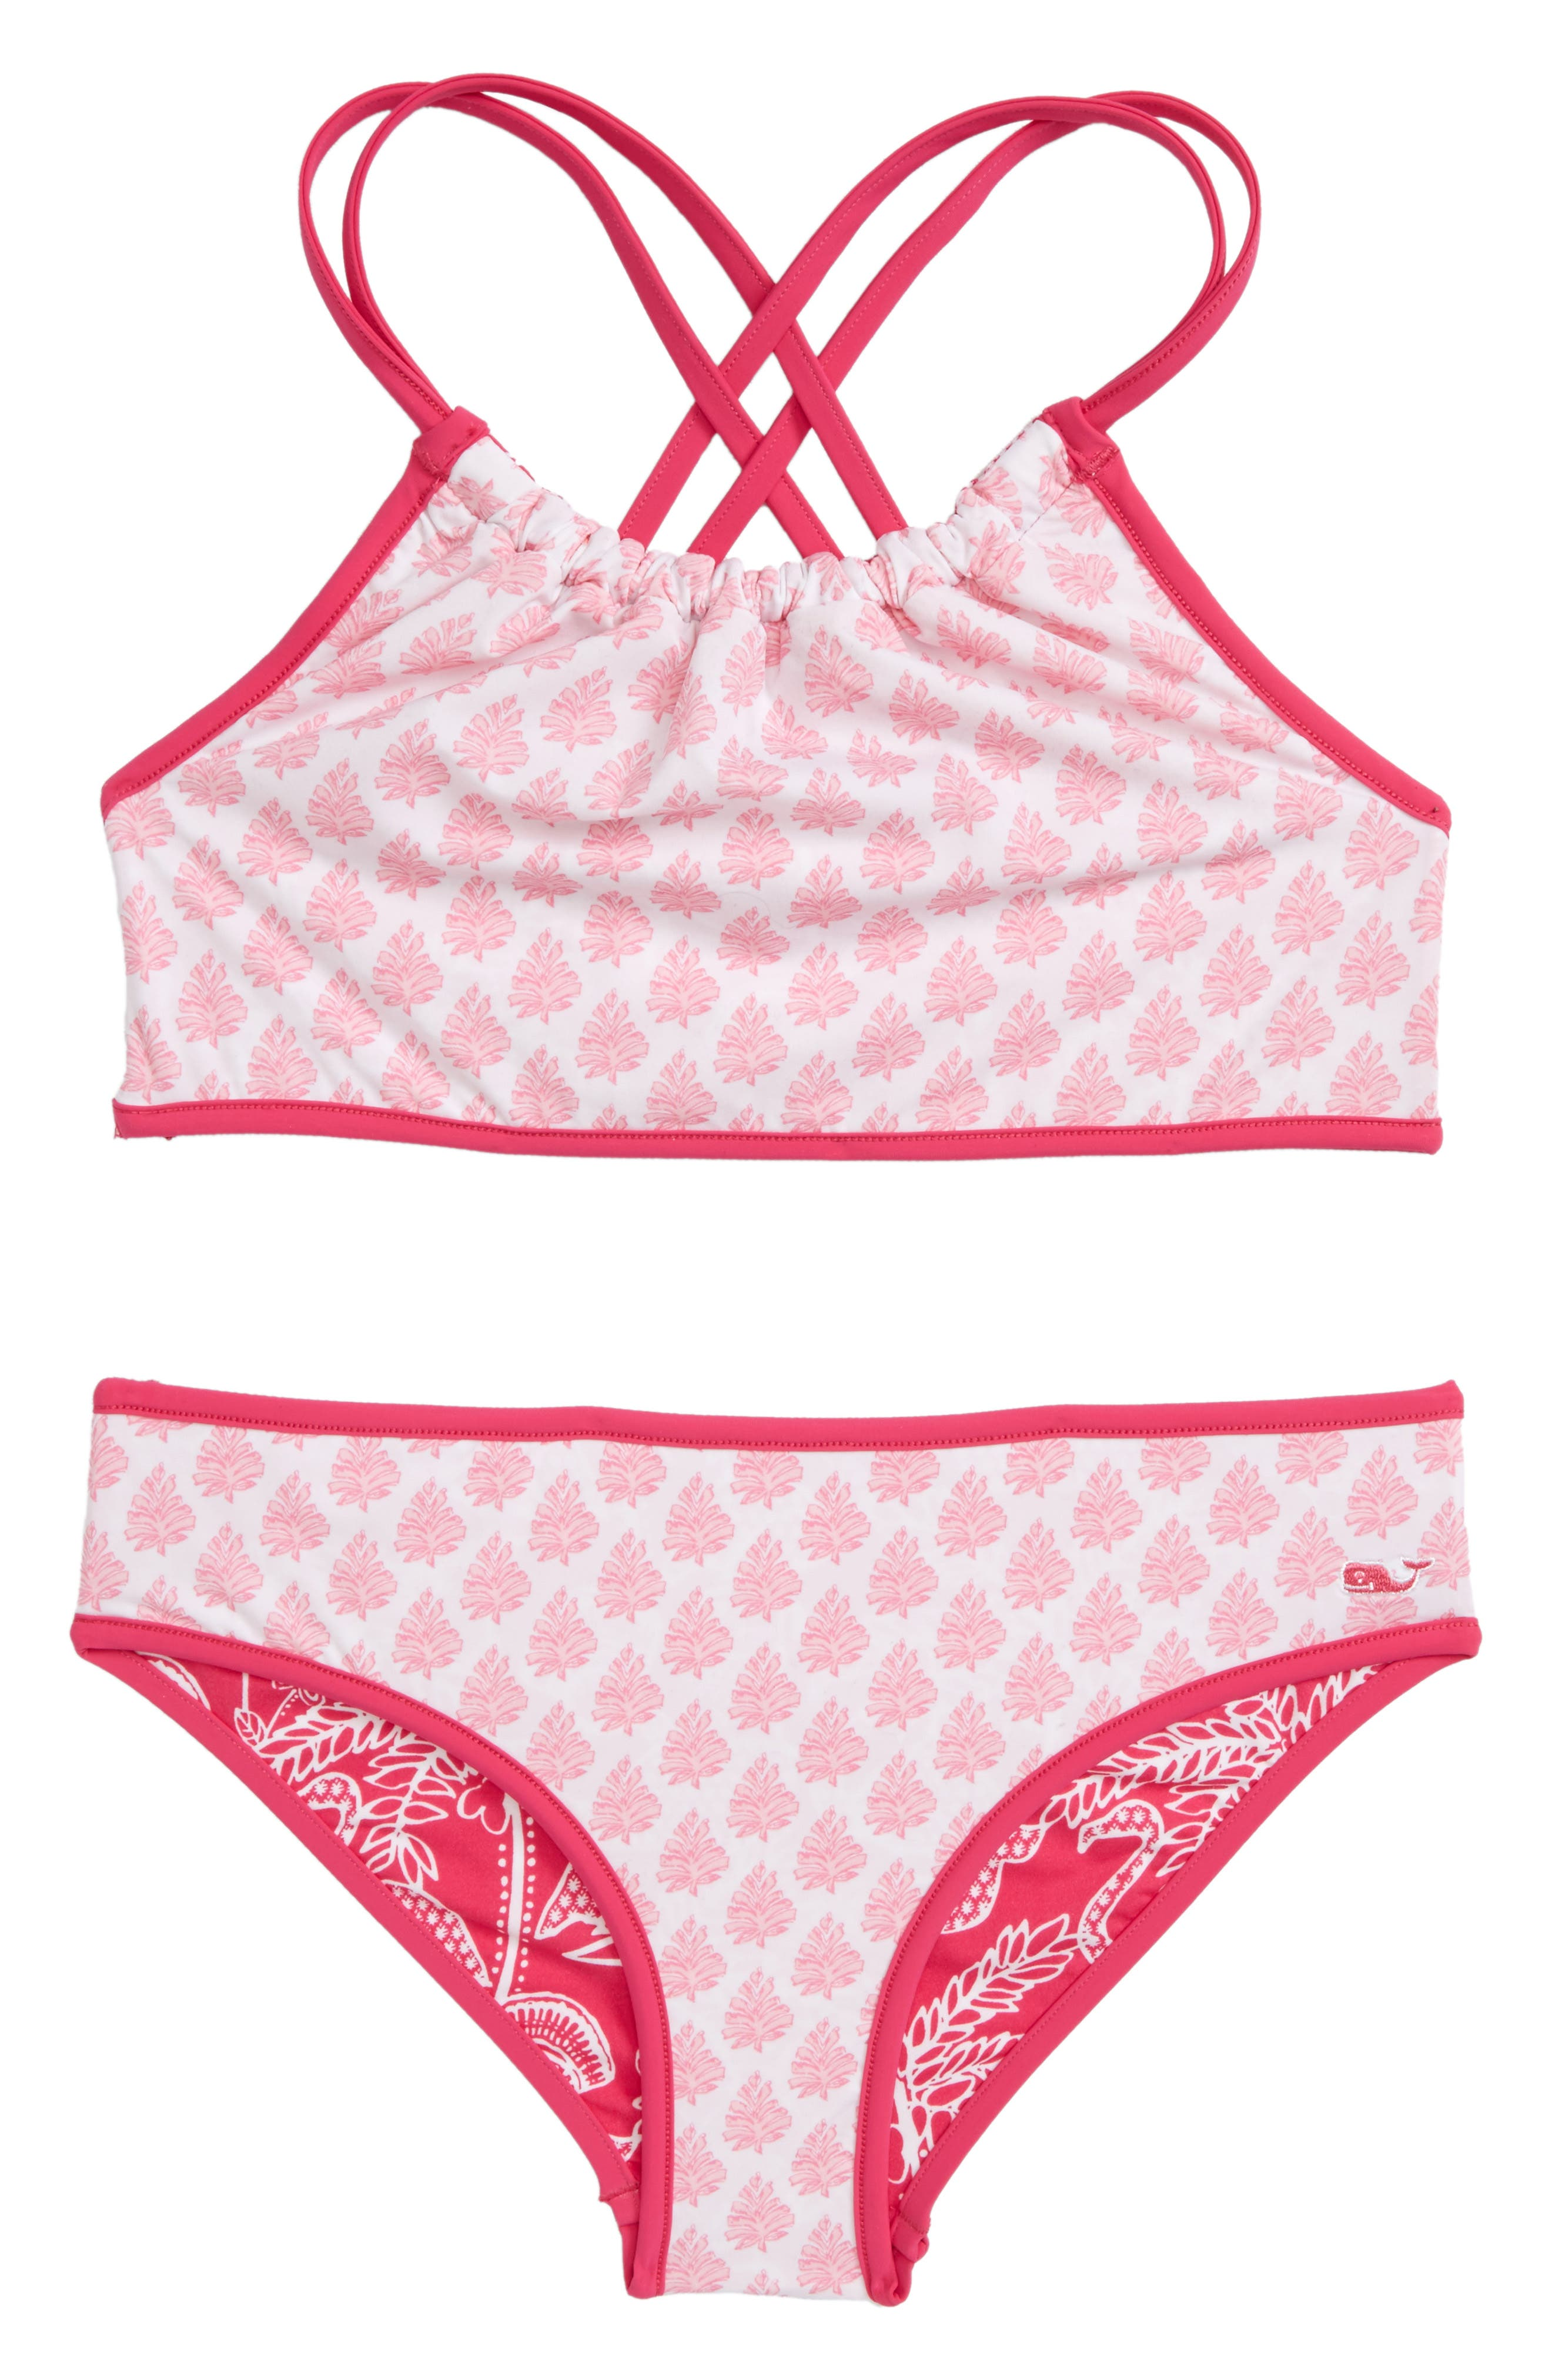 Flamingo Print Reversible Two-Piece Halter Swimsuit,                             Alternate thumbnail 2, color,                             Rhododendron